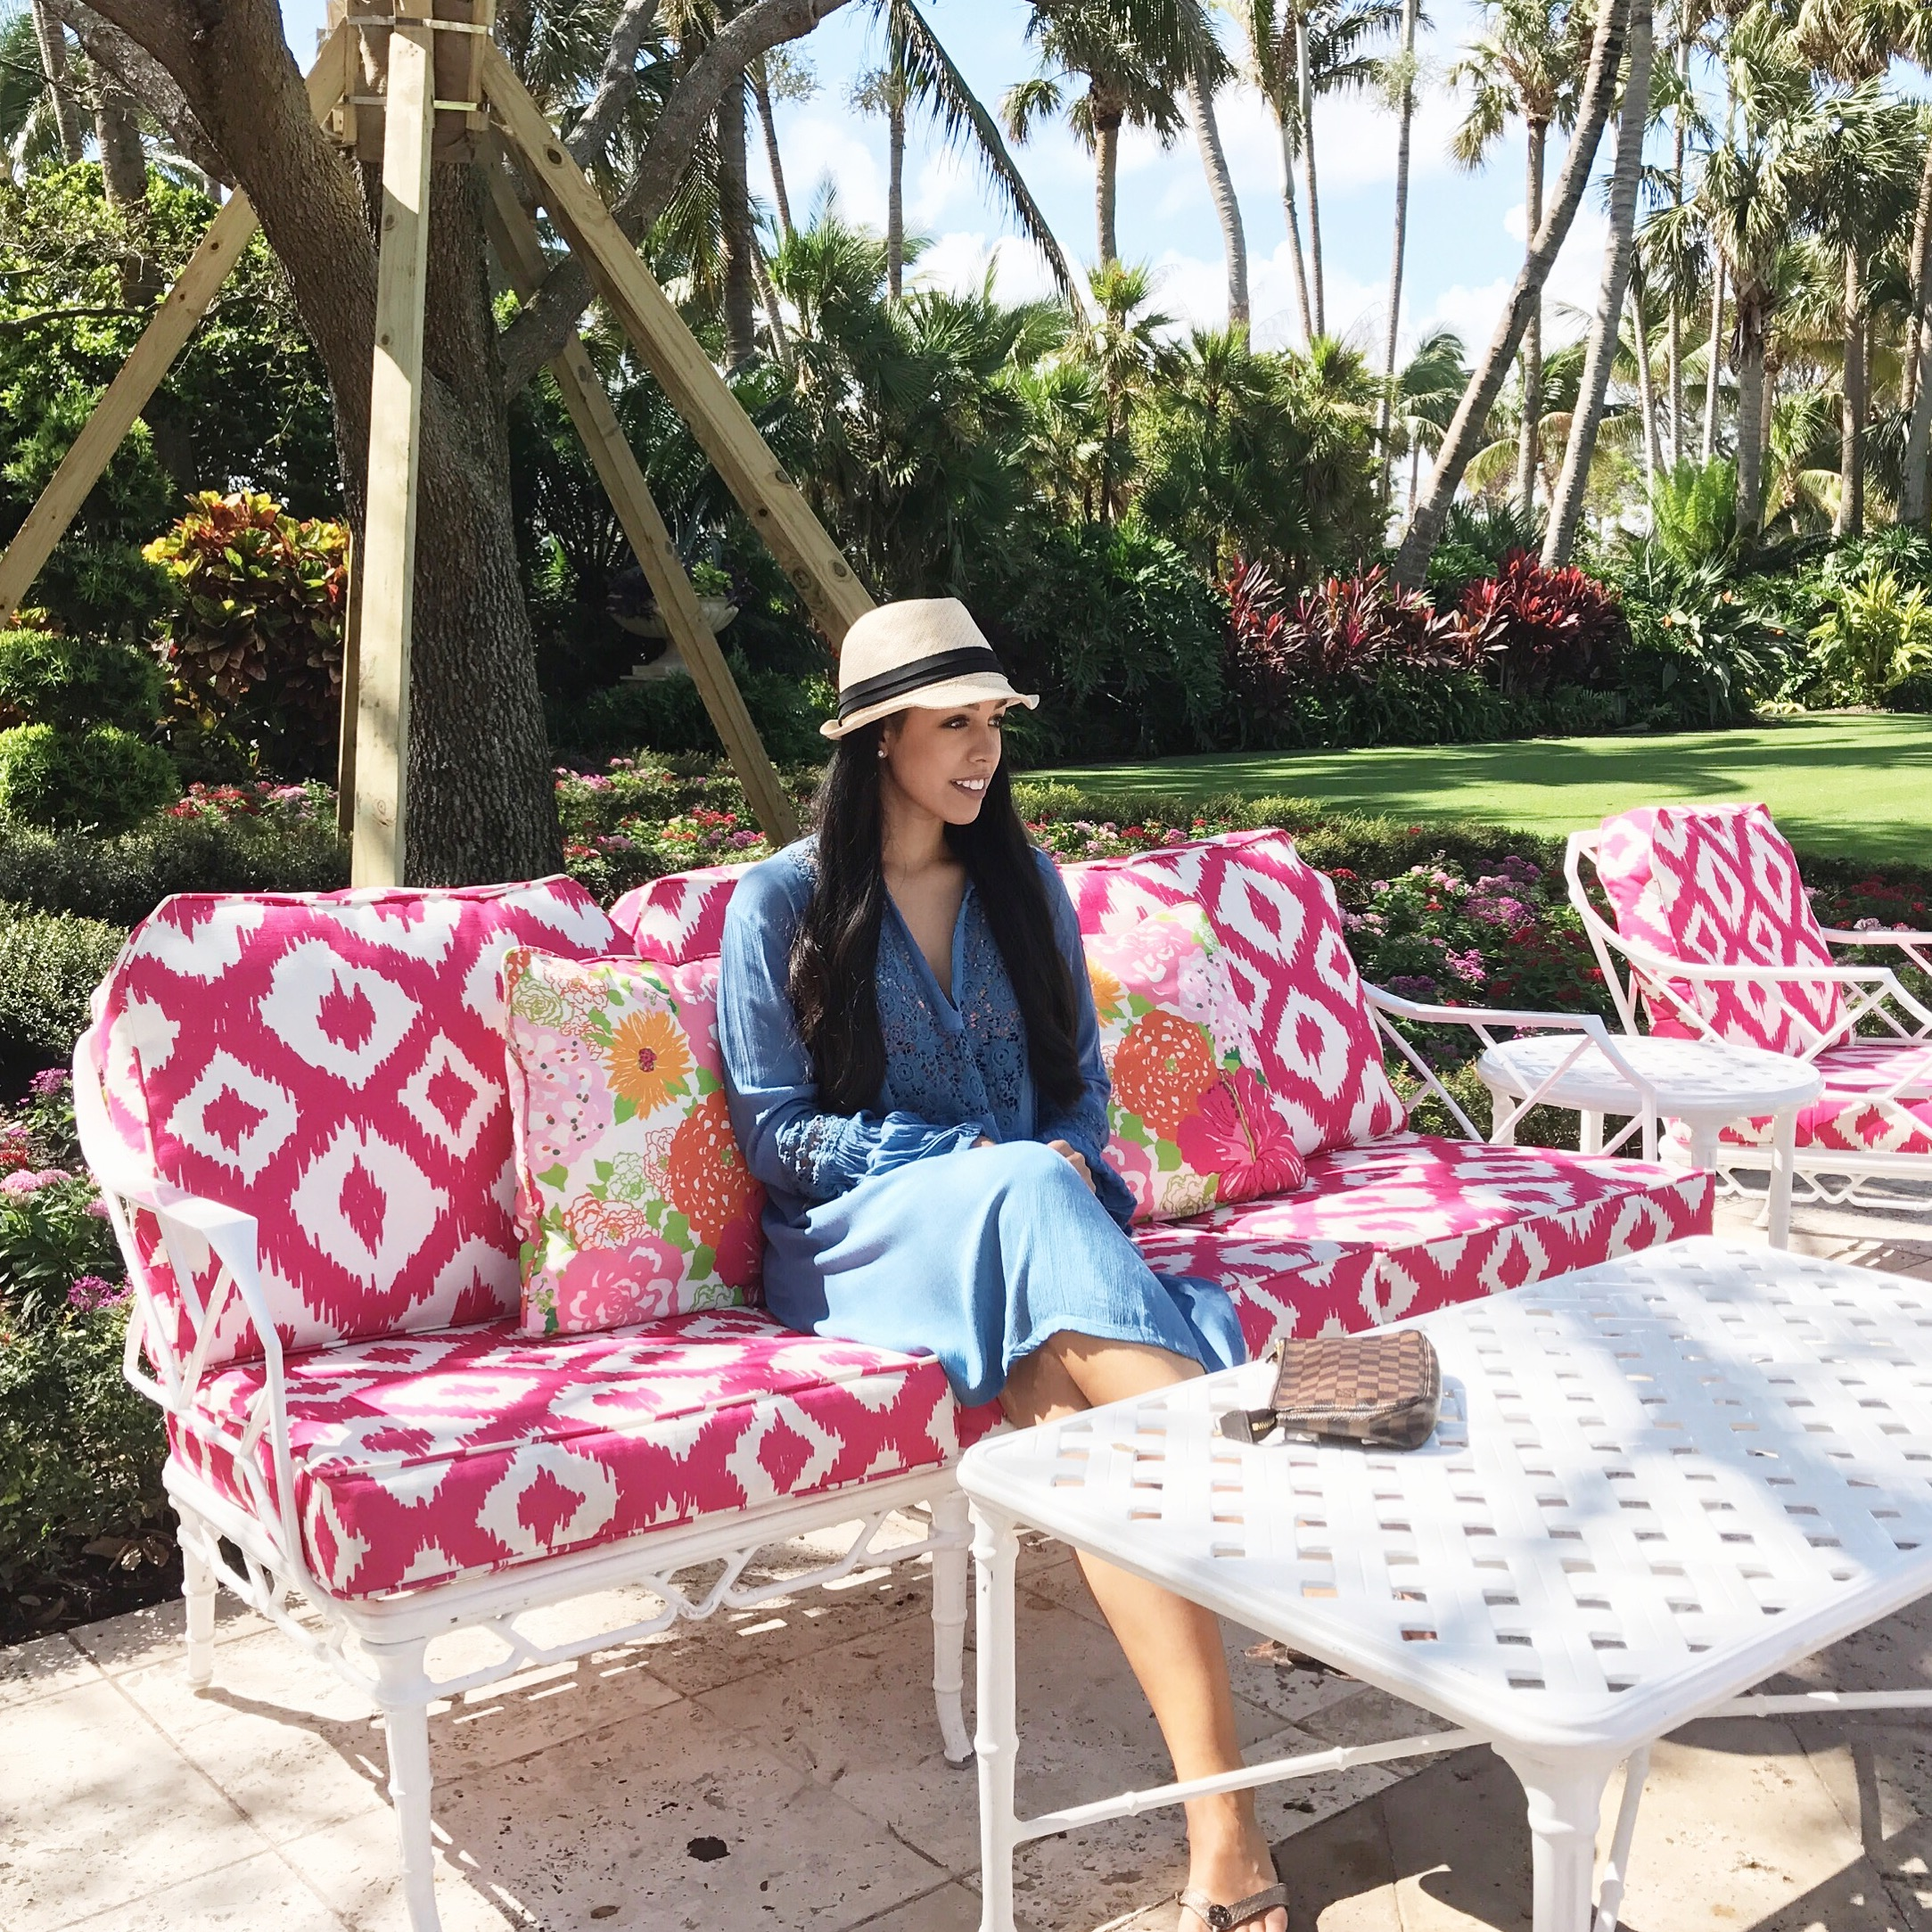 thebreakers-travel-review-courtyard-outfit.JPG